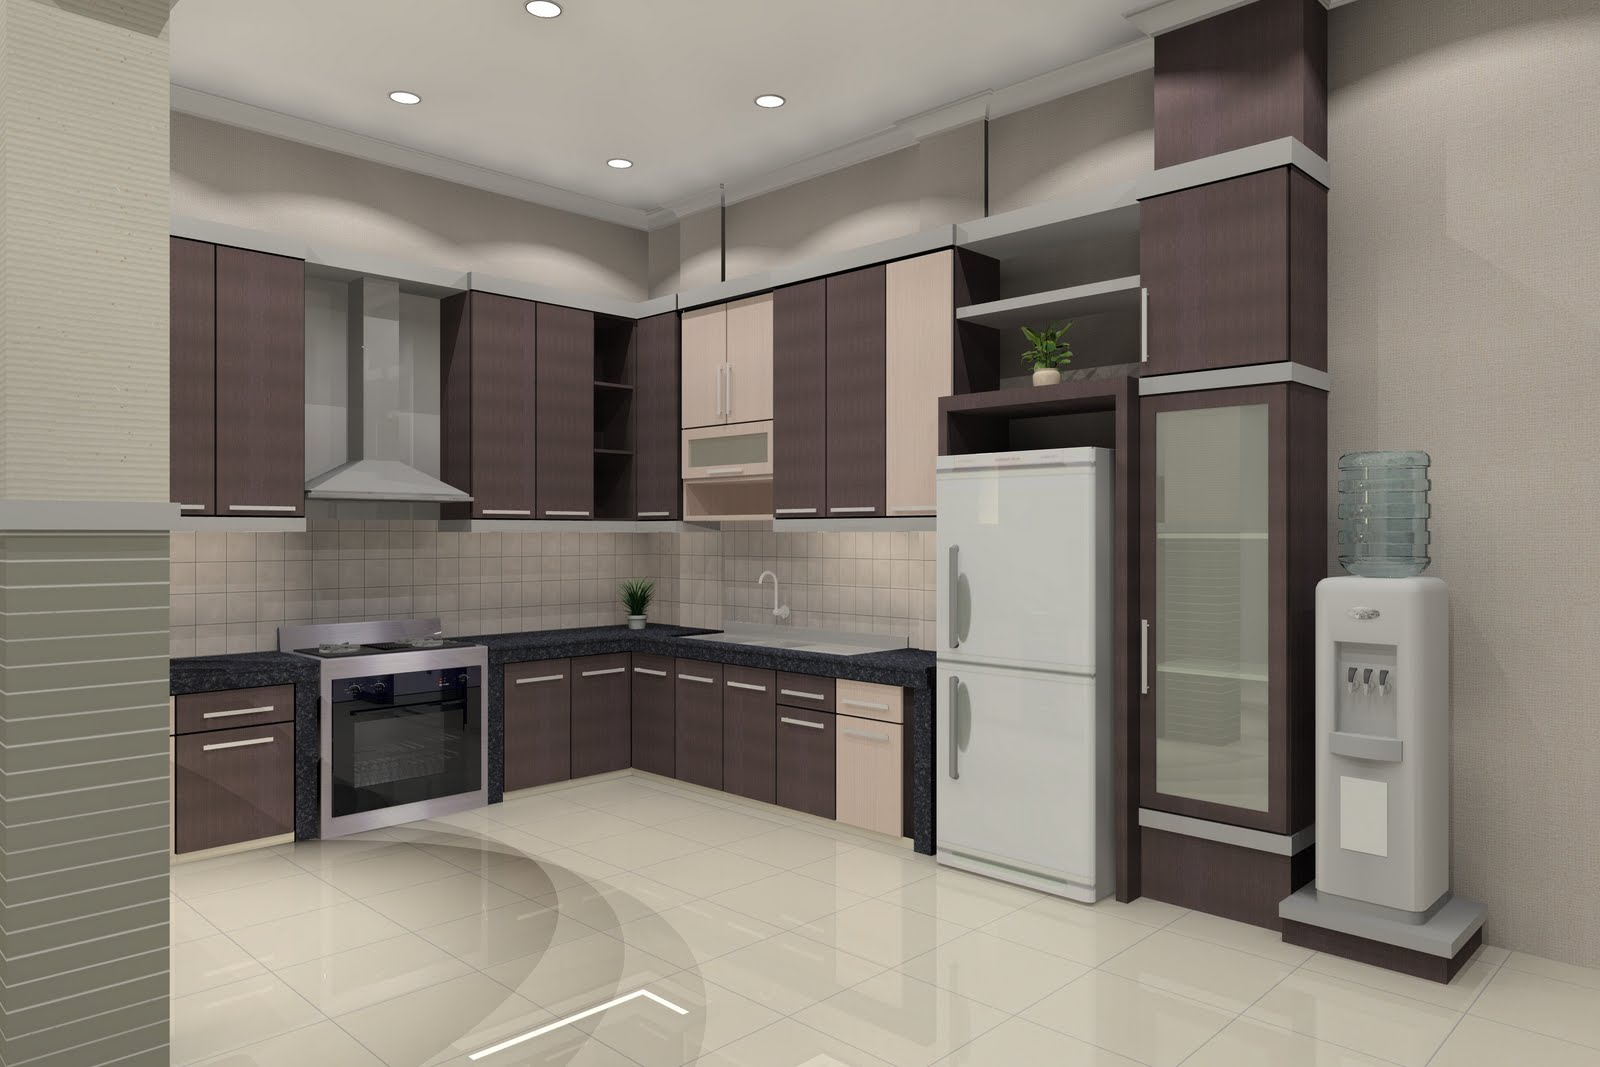 interior desain rumah murah with Dapur Rumah Minimalis on Desain Rumah Sederhana furthermore Img 20141130 072256 3 moreover Picture 84 additionally Rumah Minimalis Ukuran 6x10 as well Meja Tamu Minimalis Jati Marine Life.